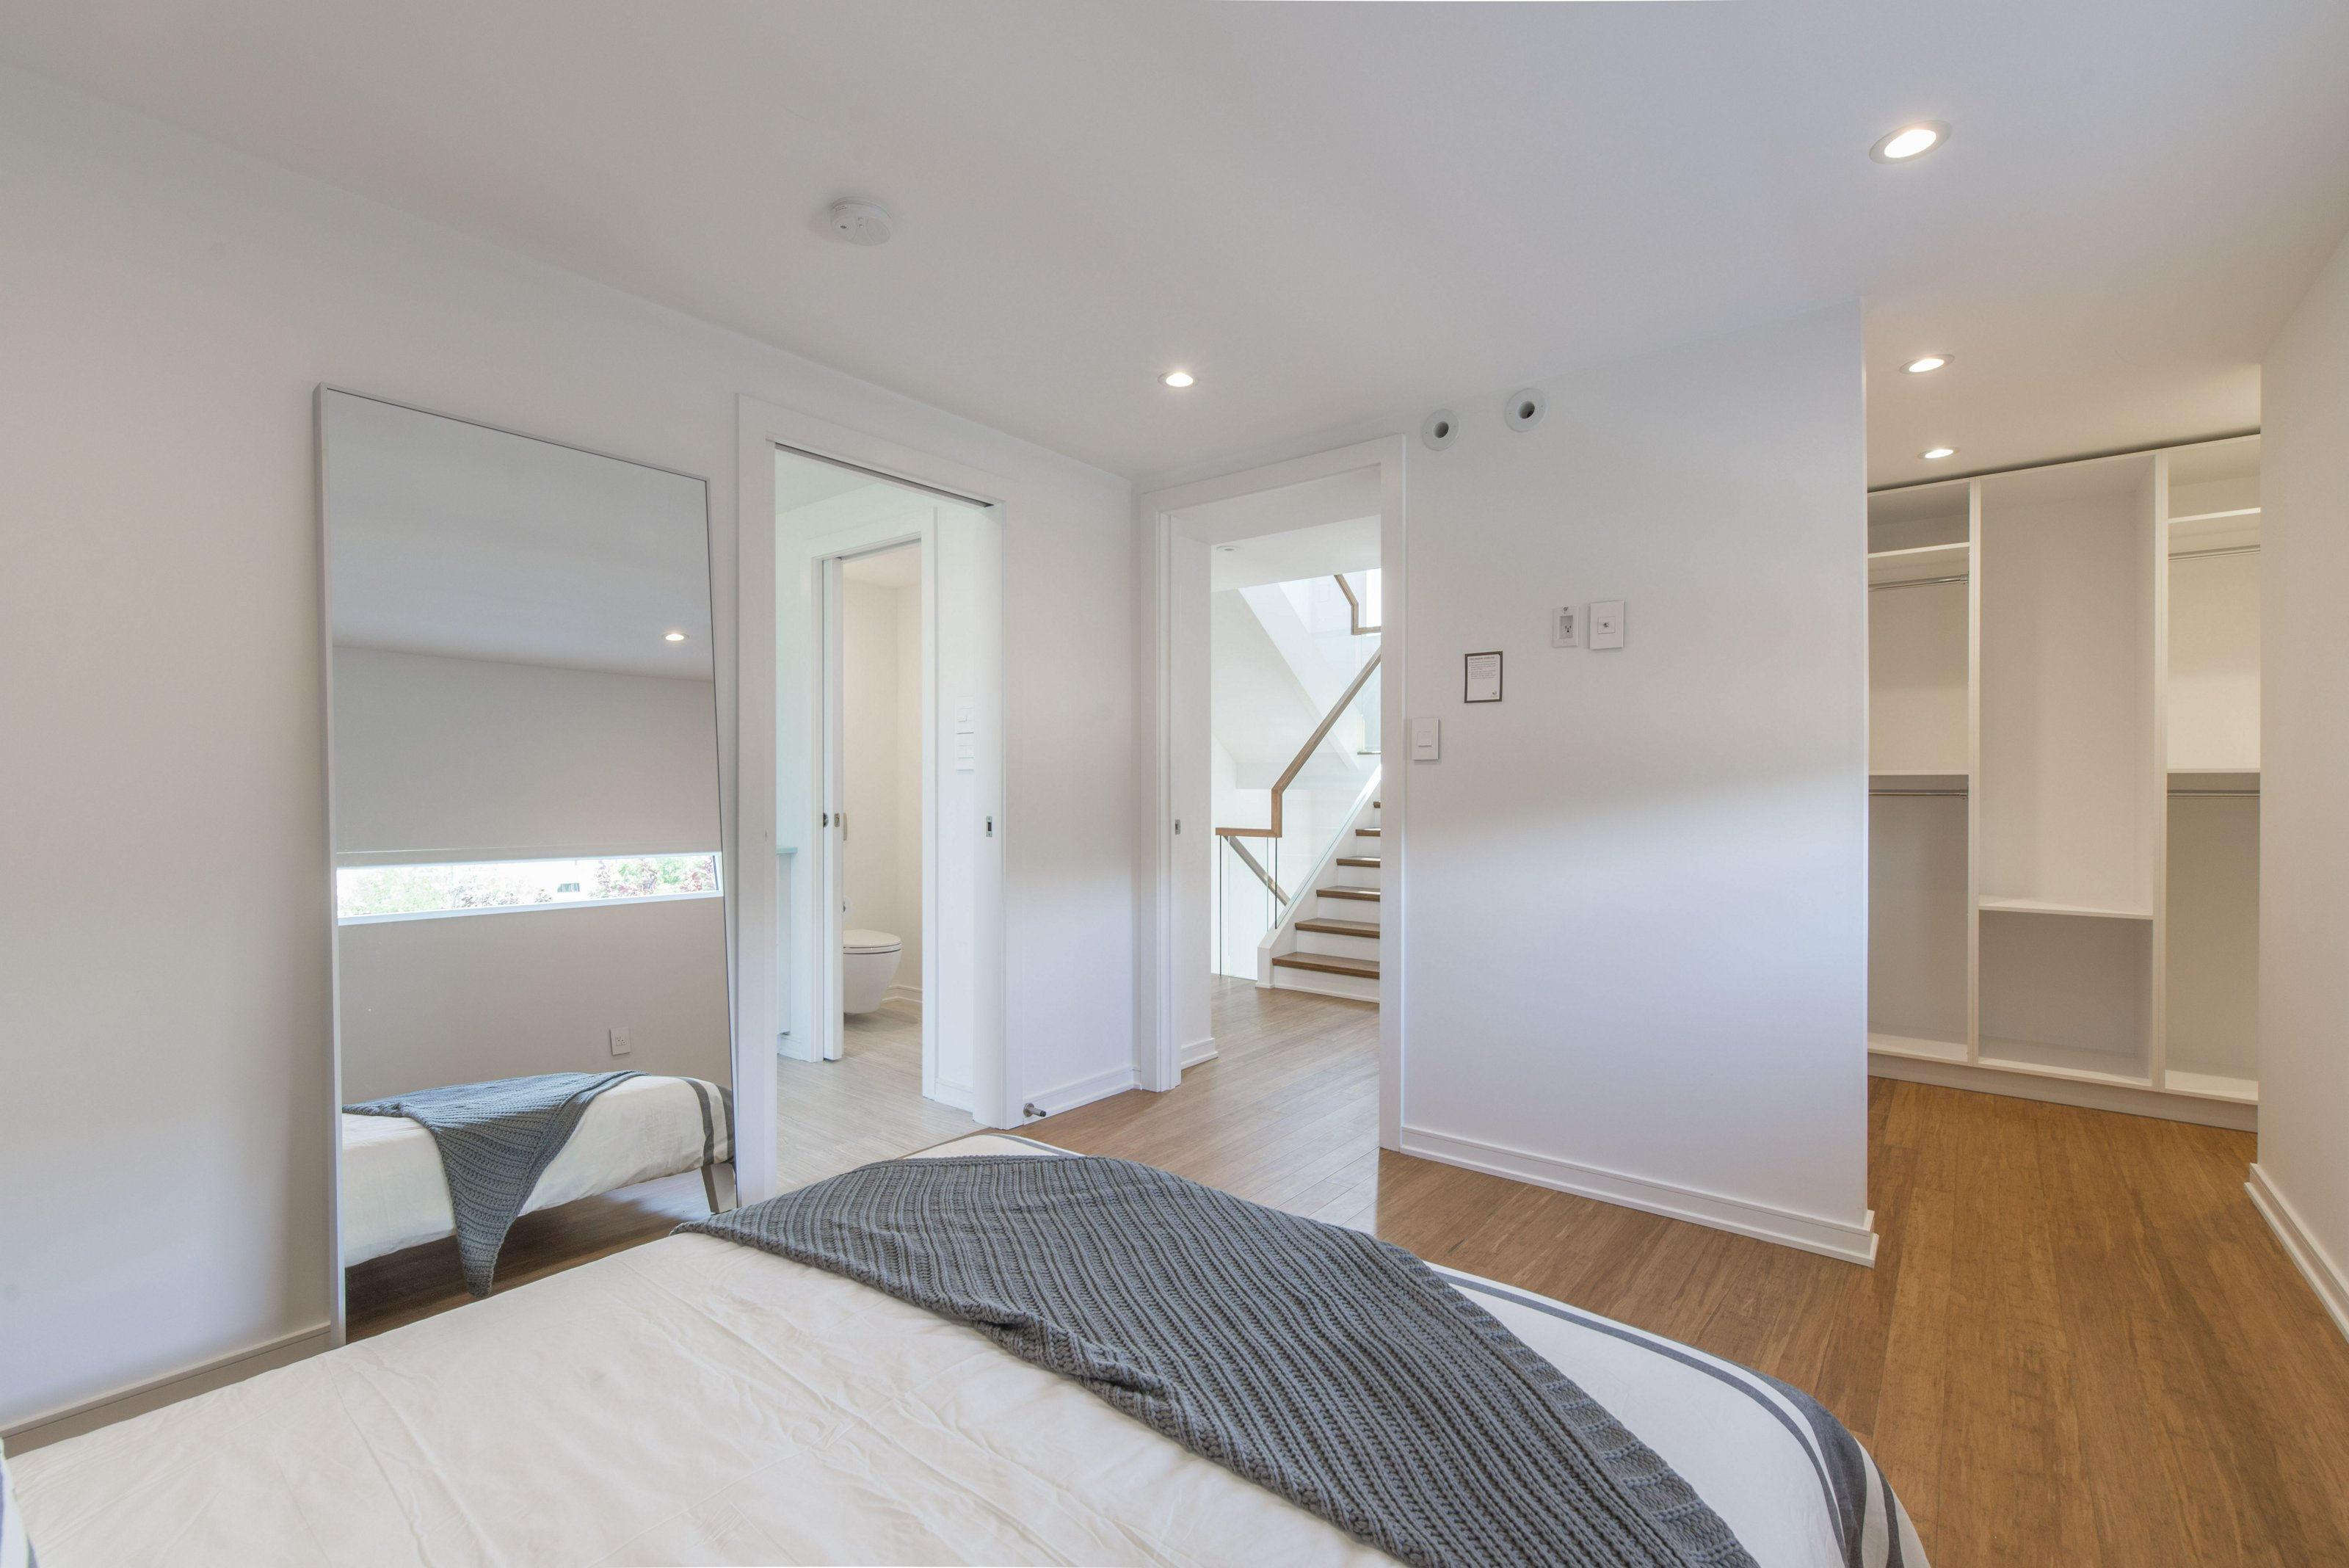 Master bedroom is spacious with a walk-in closet.